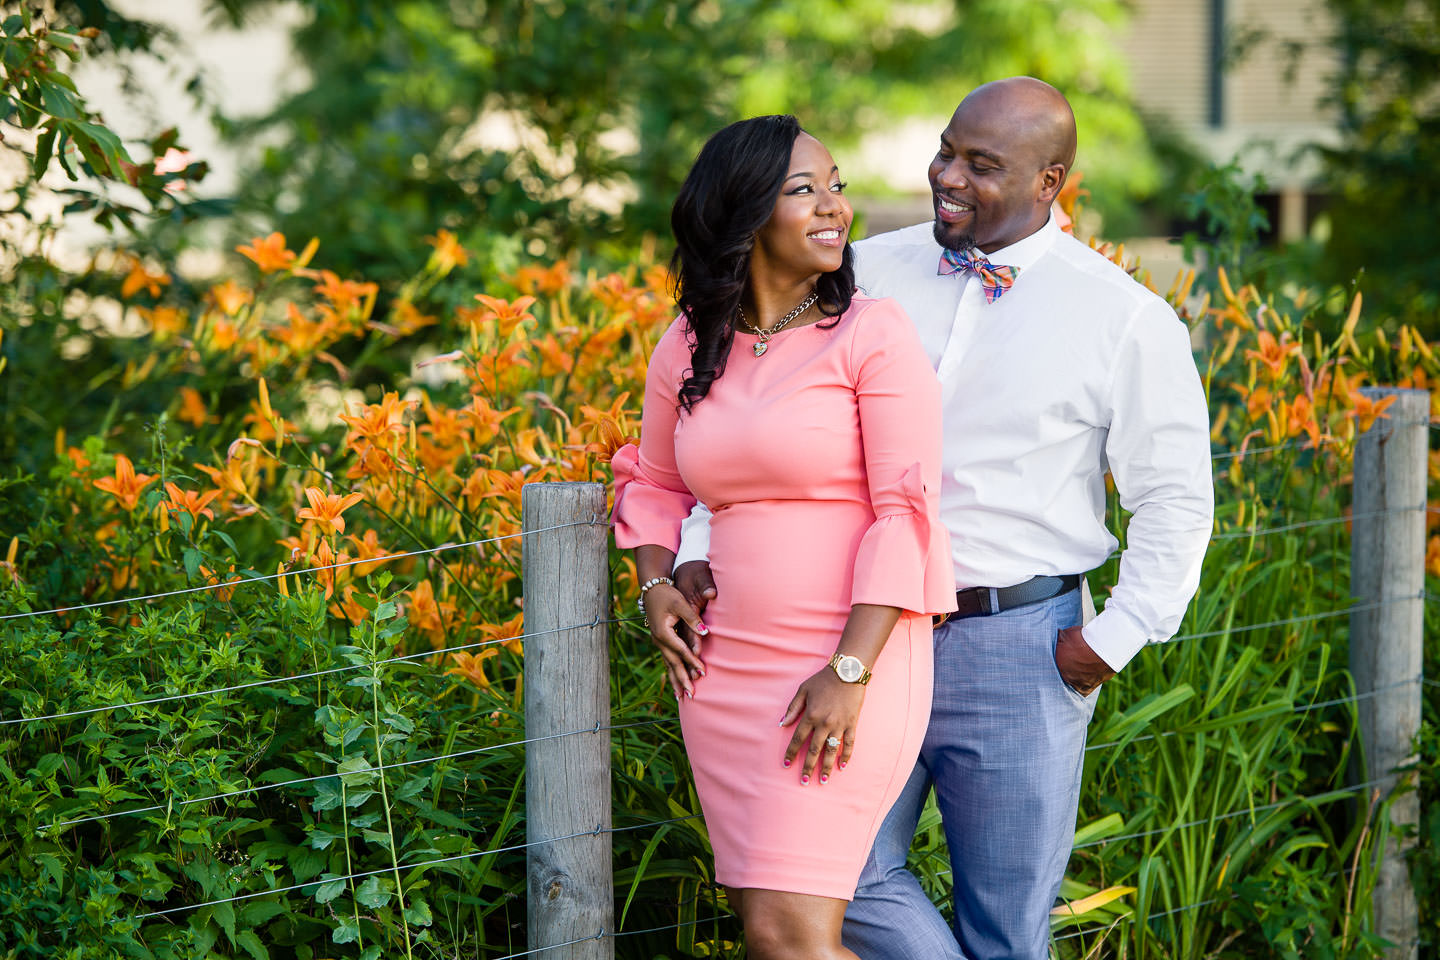 black couple engagement session in dumbo during spring in front of flowers and bushes